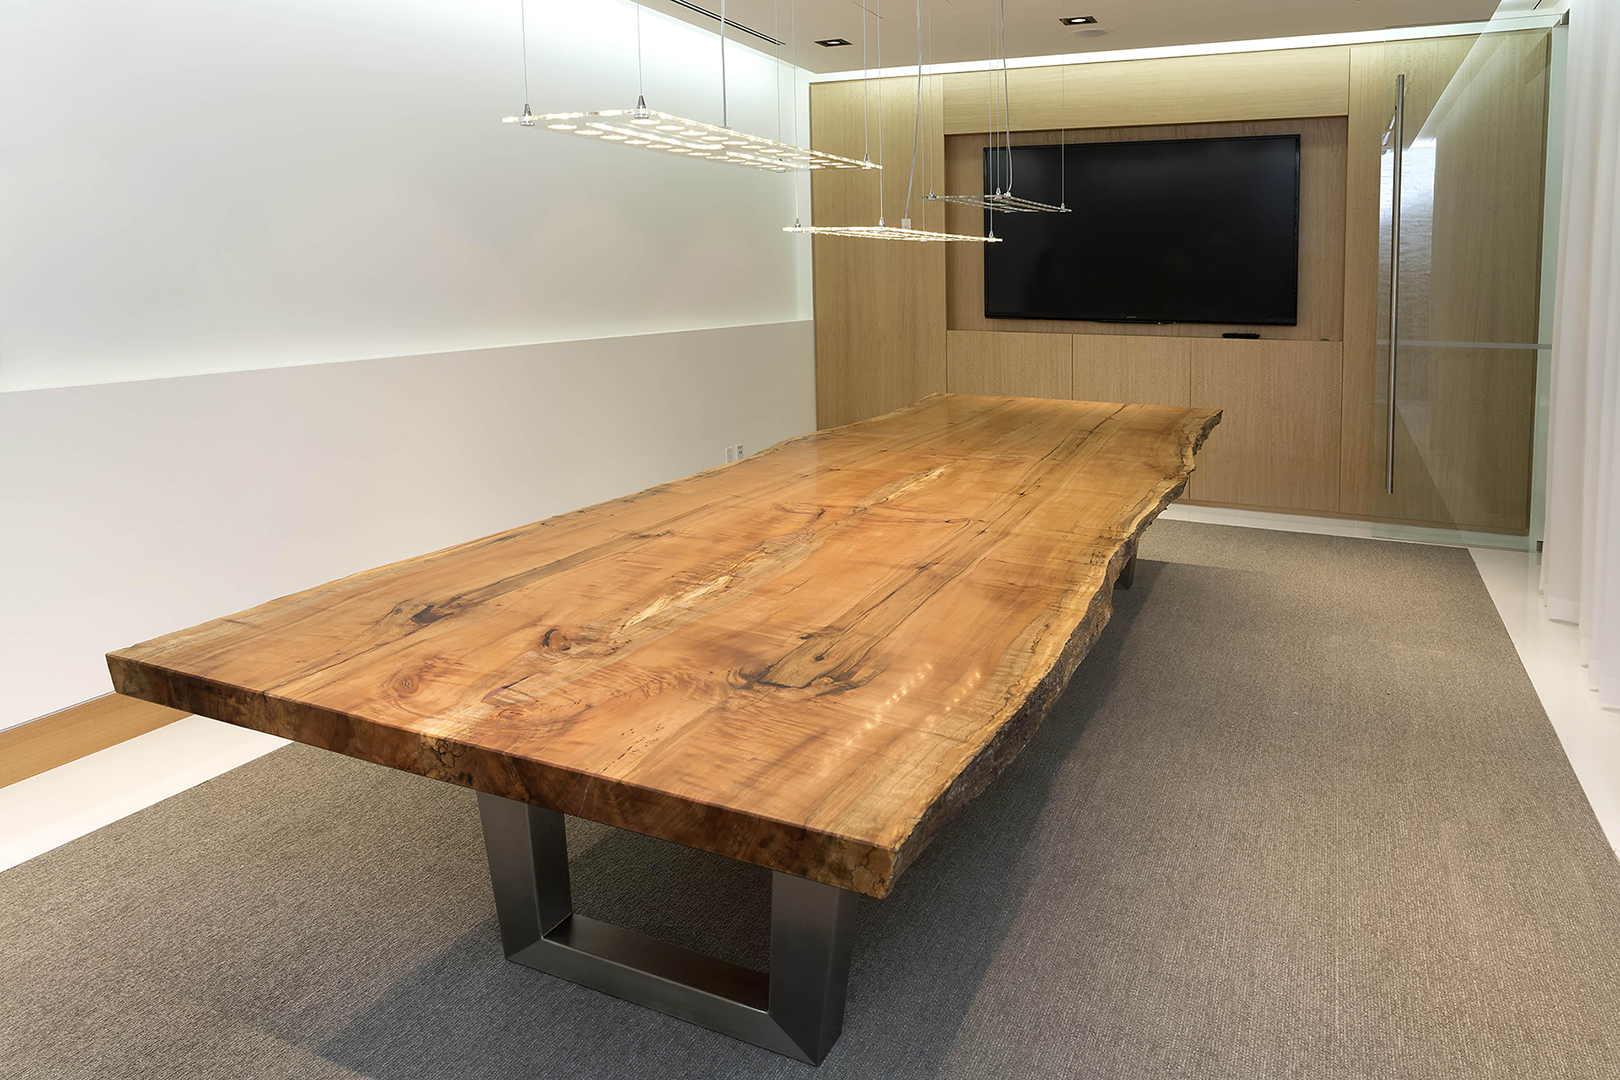 Furniture Design Vancouver mapleart: custom wood furniture, vancouver, bcboardroom tables